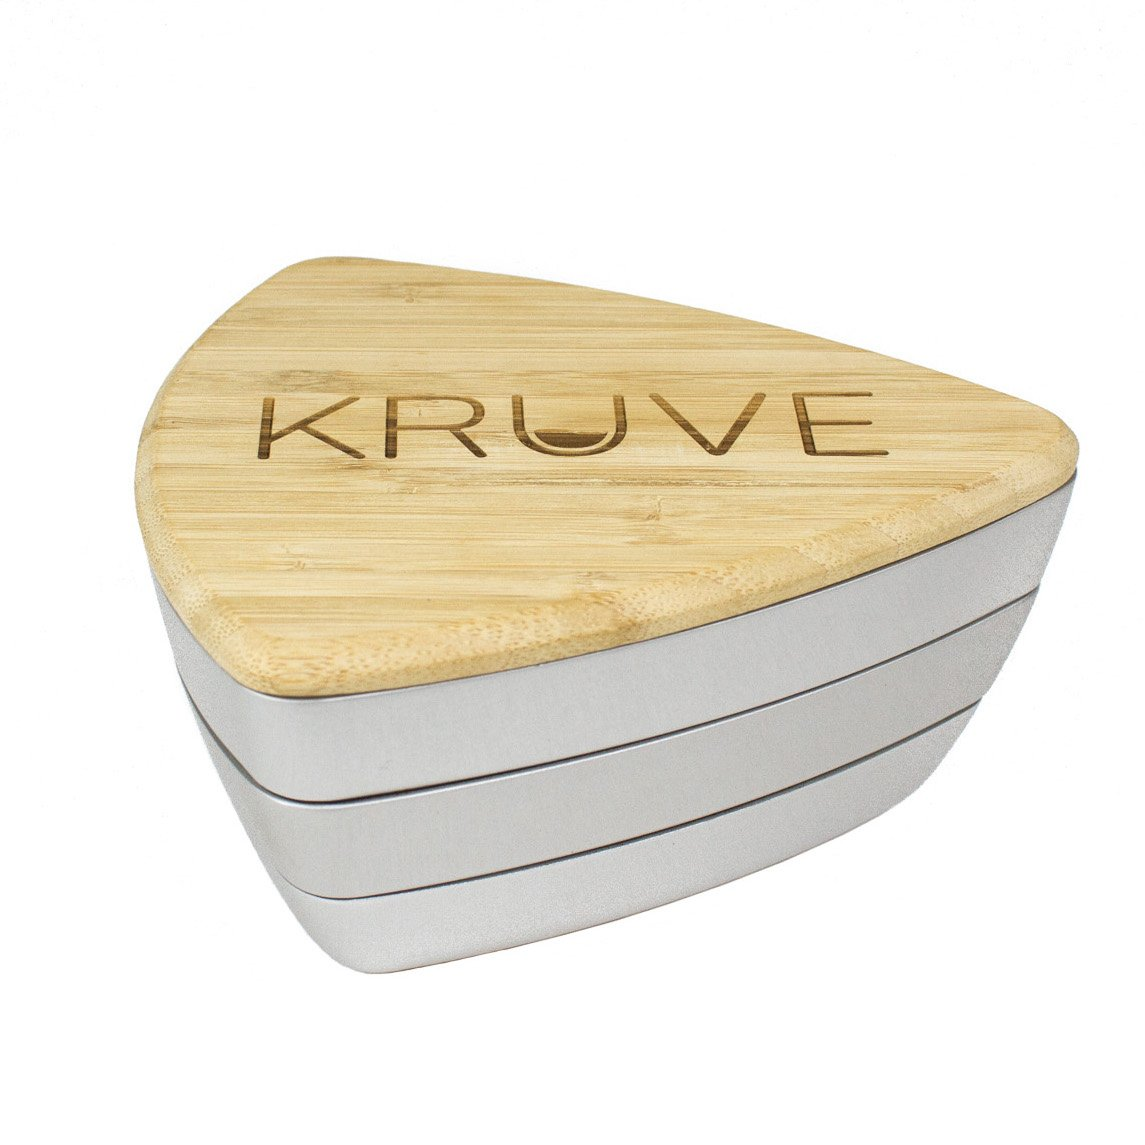 KRUVE Sifter Six Helps accurately Measure, Calibrate, Refine Coffee Grinds, for Cafes, Baristas, or Home Brewers 6 Sieves Silver